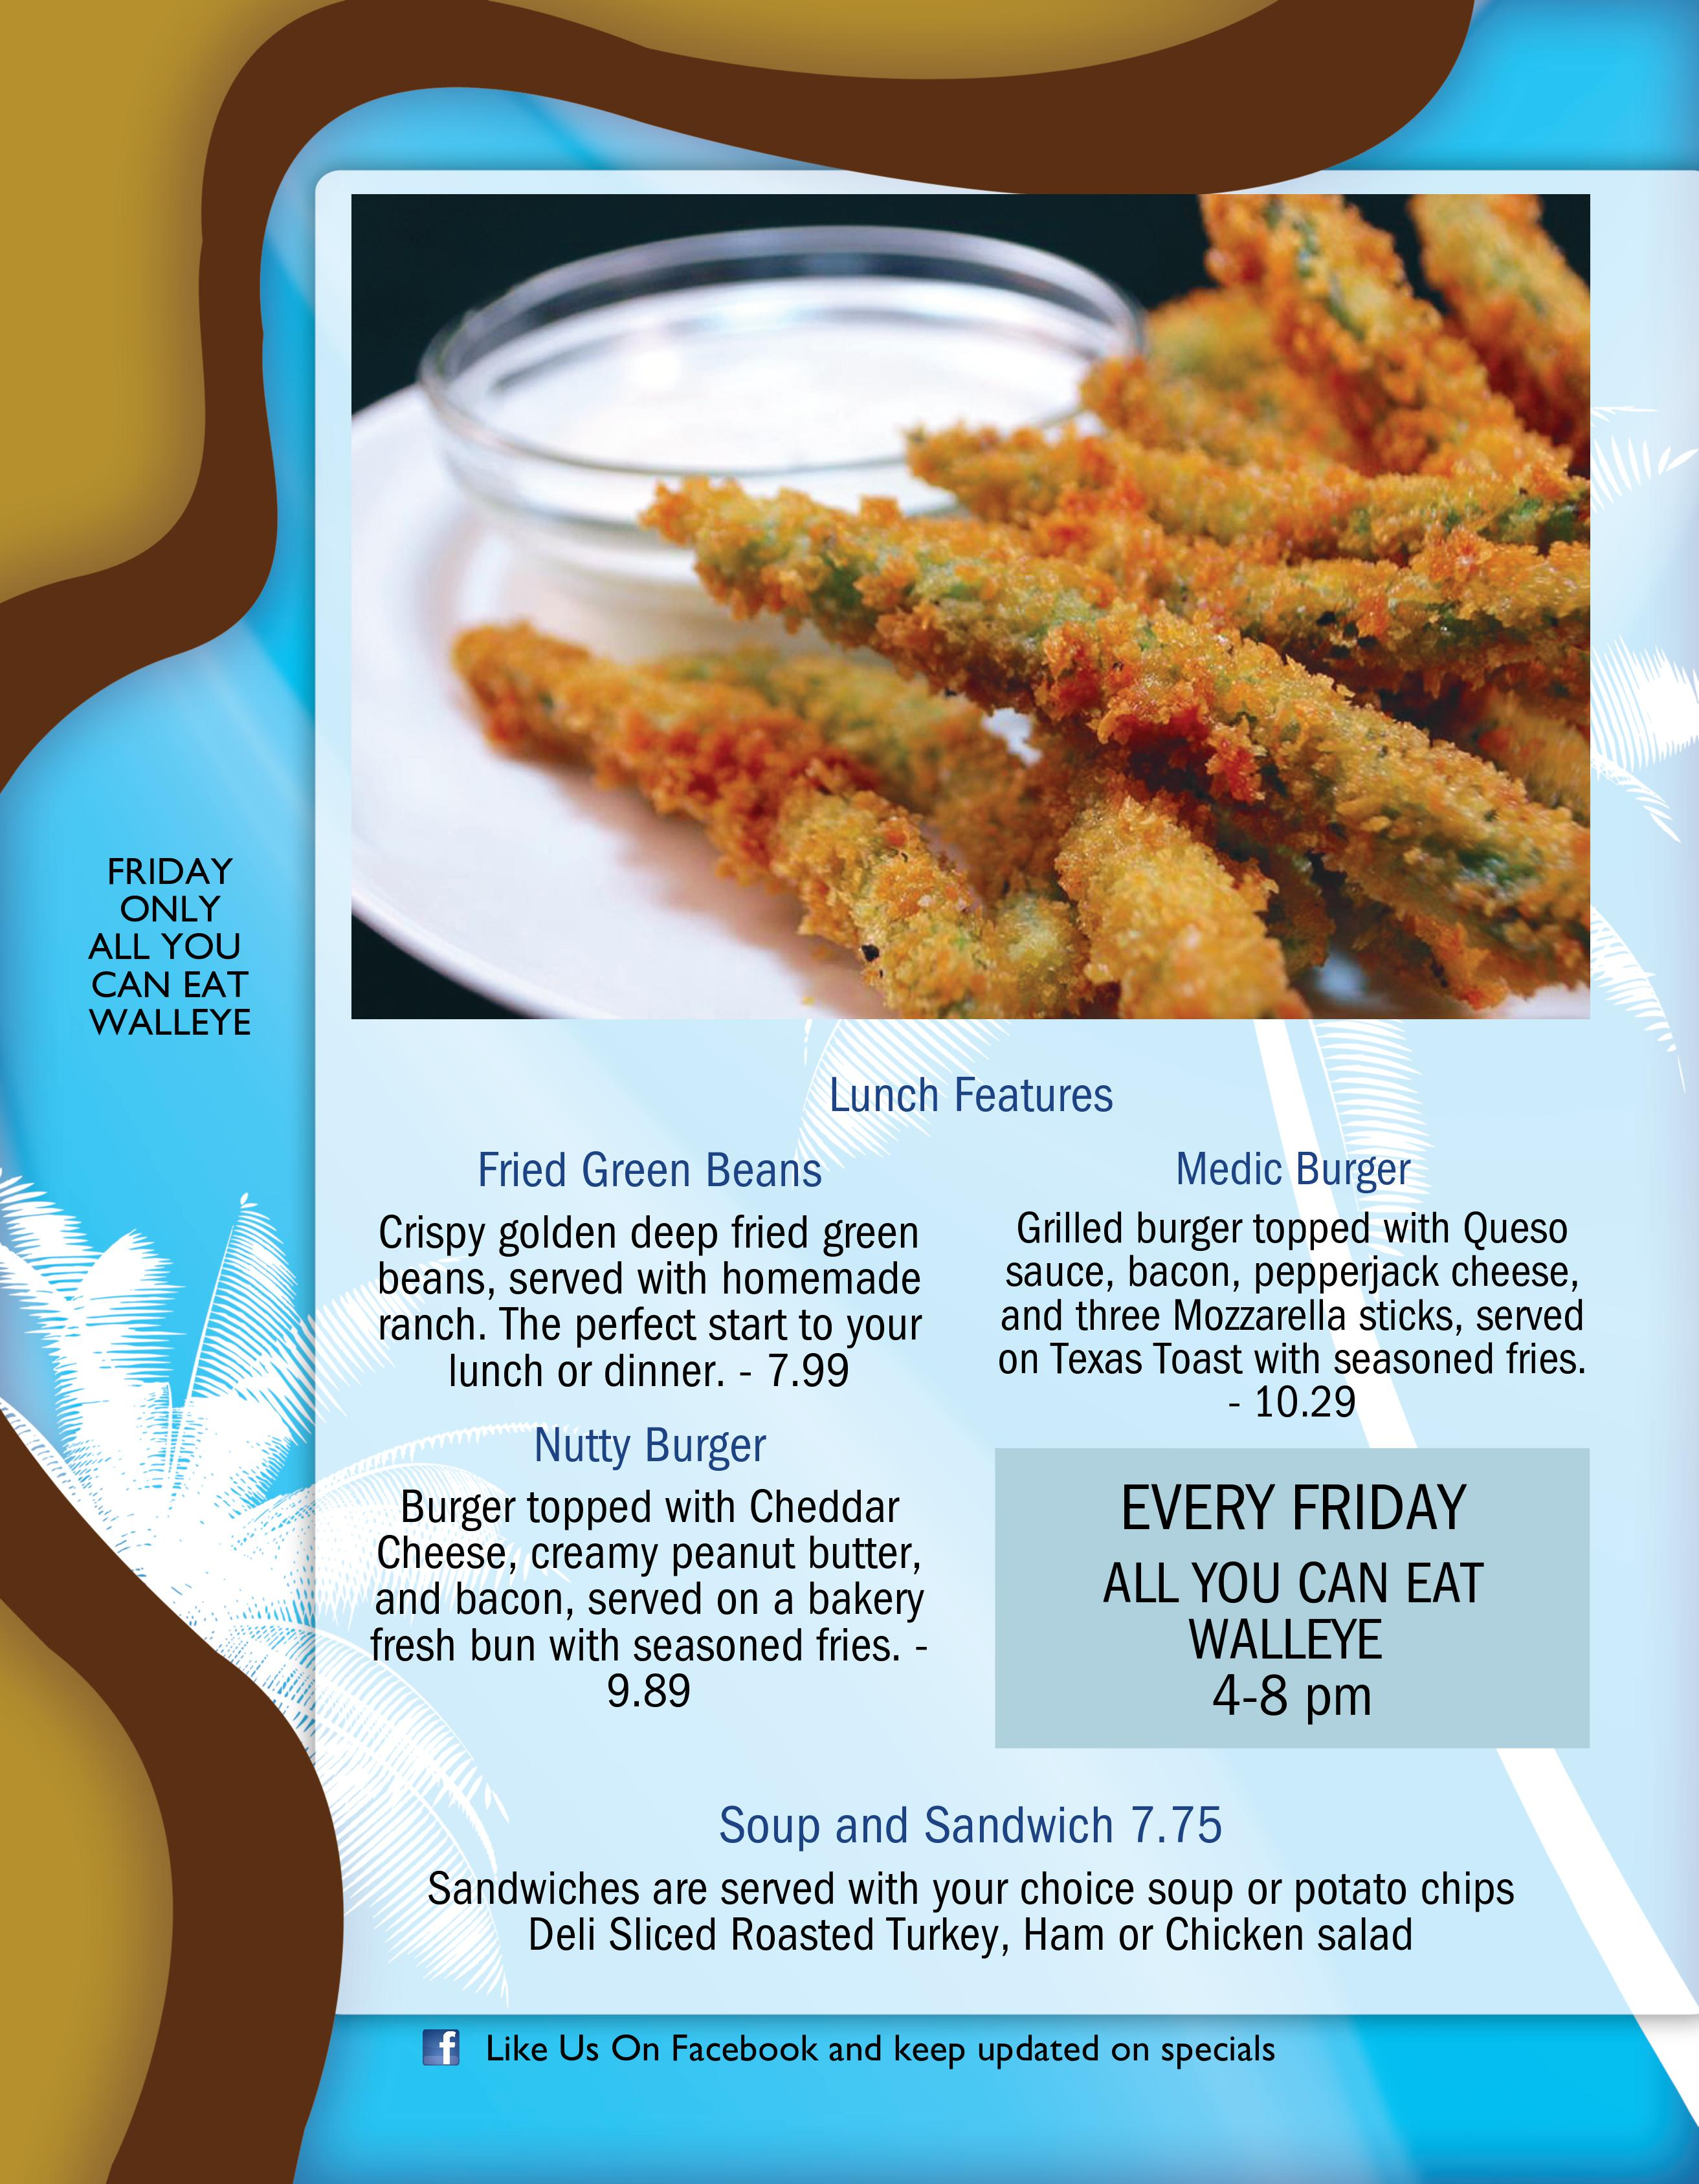 Lunch Features: Fried Green Beans Crispy golden deep fried green beans, served with homemade ranch. The perfect start to your lunch or dinner. - 7.99 , Medic Burger Grilled burger topped with Queso sauce, bacon, pepperjack cheese, and three Mozzarella sticks, served on Texas Toast with seasoned fries. - 10.29 , Nutty Burger Burger topped with Cheddar Cheese, creamy peanut butter, and bacon, served on a bakery fresh bun with seasoned fries. 9.89 and Soup and Sandwich 7.75 Sandwiches are served with your choice soup or potato chips Deli Sliced Roasted Turkey, Ham or Chicken salad. EVERY FRIDAY ALL YOU CAN EAT WALLEYE 4-8 pm